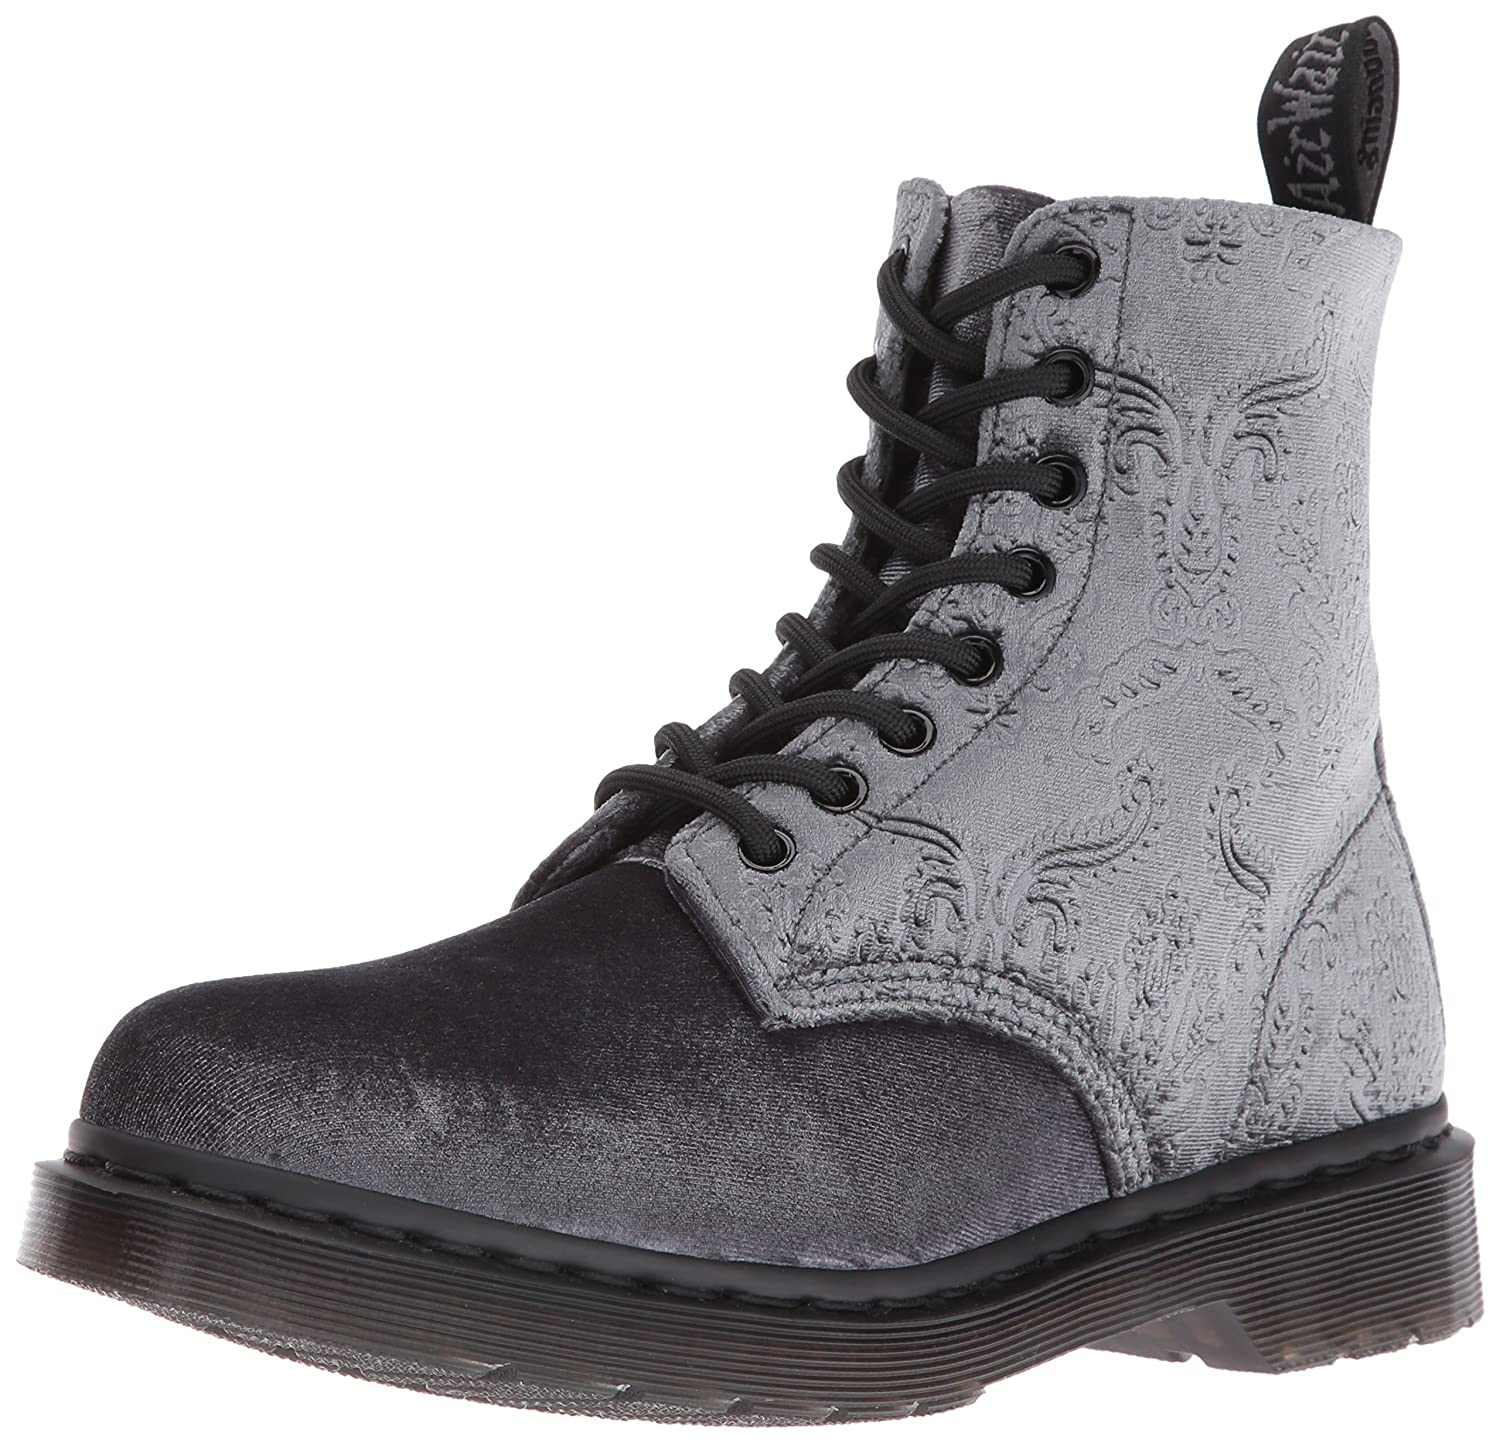 Dr. Martens Women's 1460 Brocade Combat Boot B01AMSQFUI 3 UK/5 M US|Grey